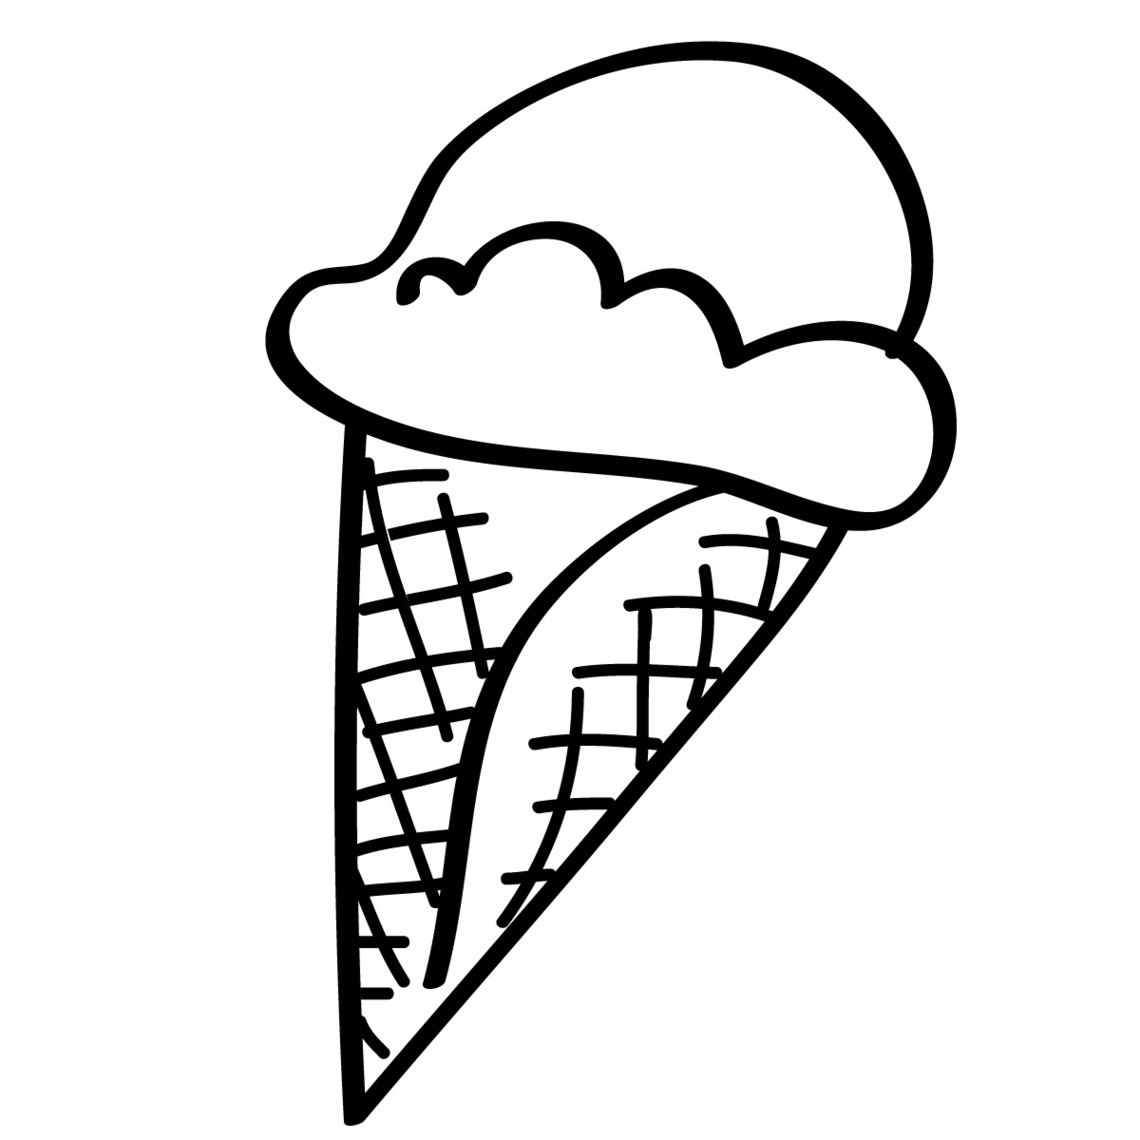 Waffle Cone clipart Clipart more outline clipart outline